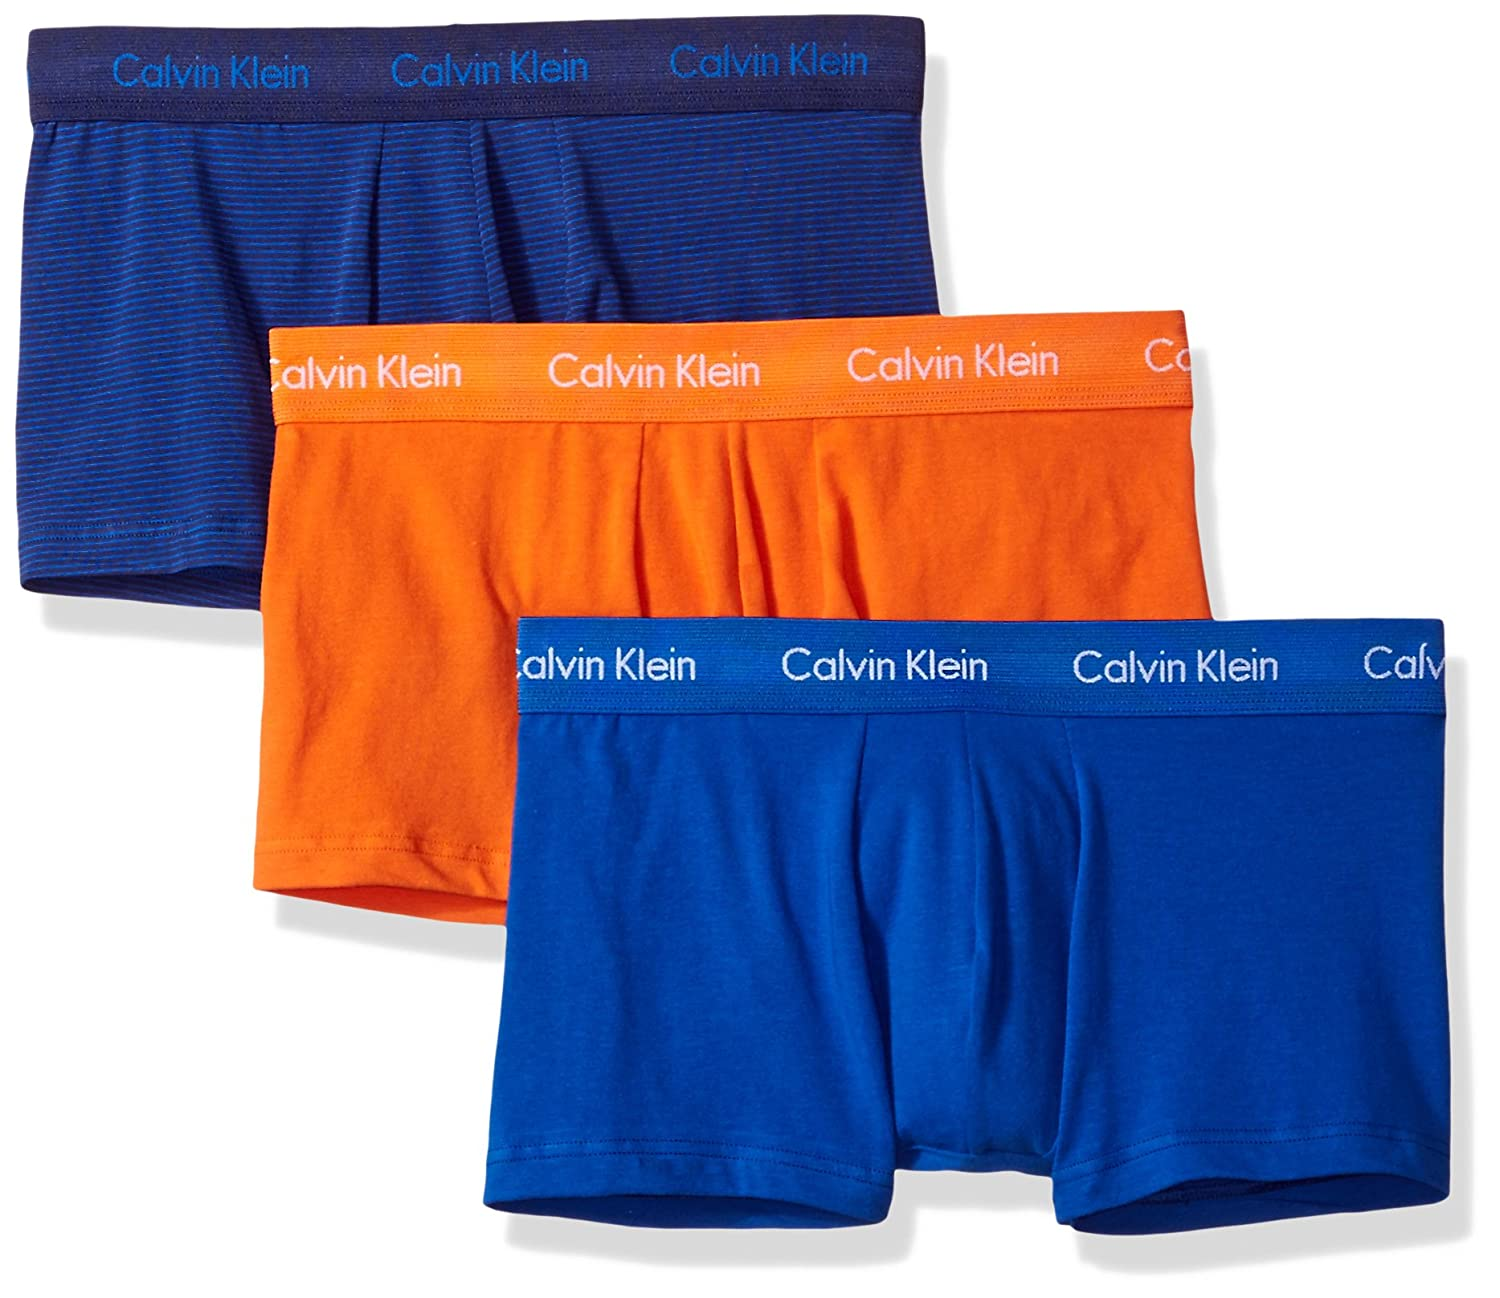 CALVIN KLEIN カルバンクライン コットンストレッチ クラシックフィット ローライズトランクス 3枚組 NU2664 3PACK COTTON STRETCH Classic Fit Low Rise Trunks B072M39V68 Large|Muscari Blue/Blue Ribbon/Muscari Blue Stripe/Deep Sunset Muscari Blue/Blue Ribbon/Muscari Blue Stripe/Deep Sunset Large